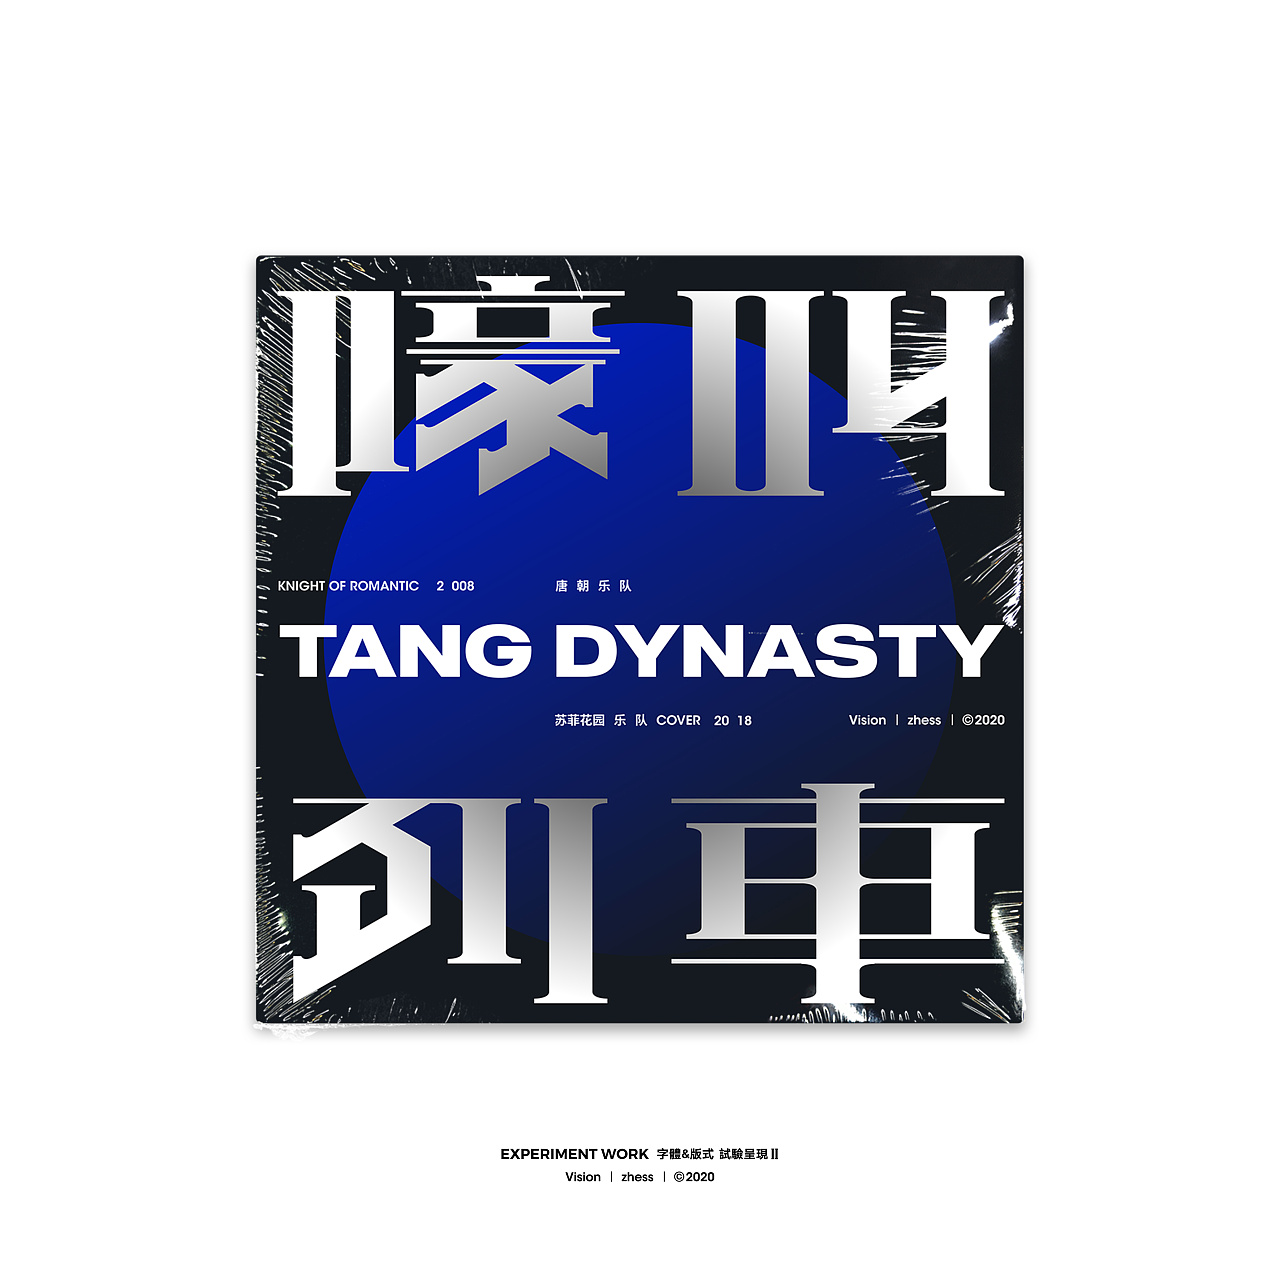 Chinese Creative Font Design-Recently listening to songs, personal practice, subjective feelings are relatively strong